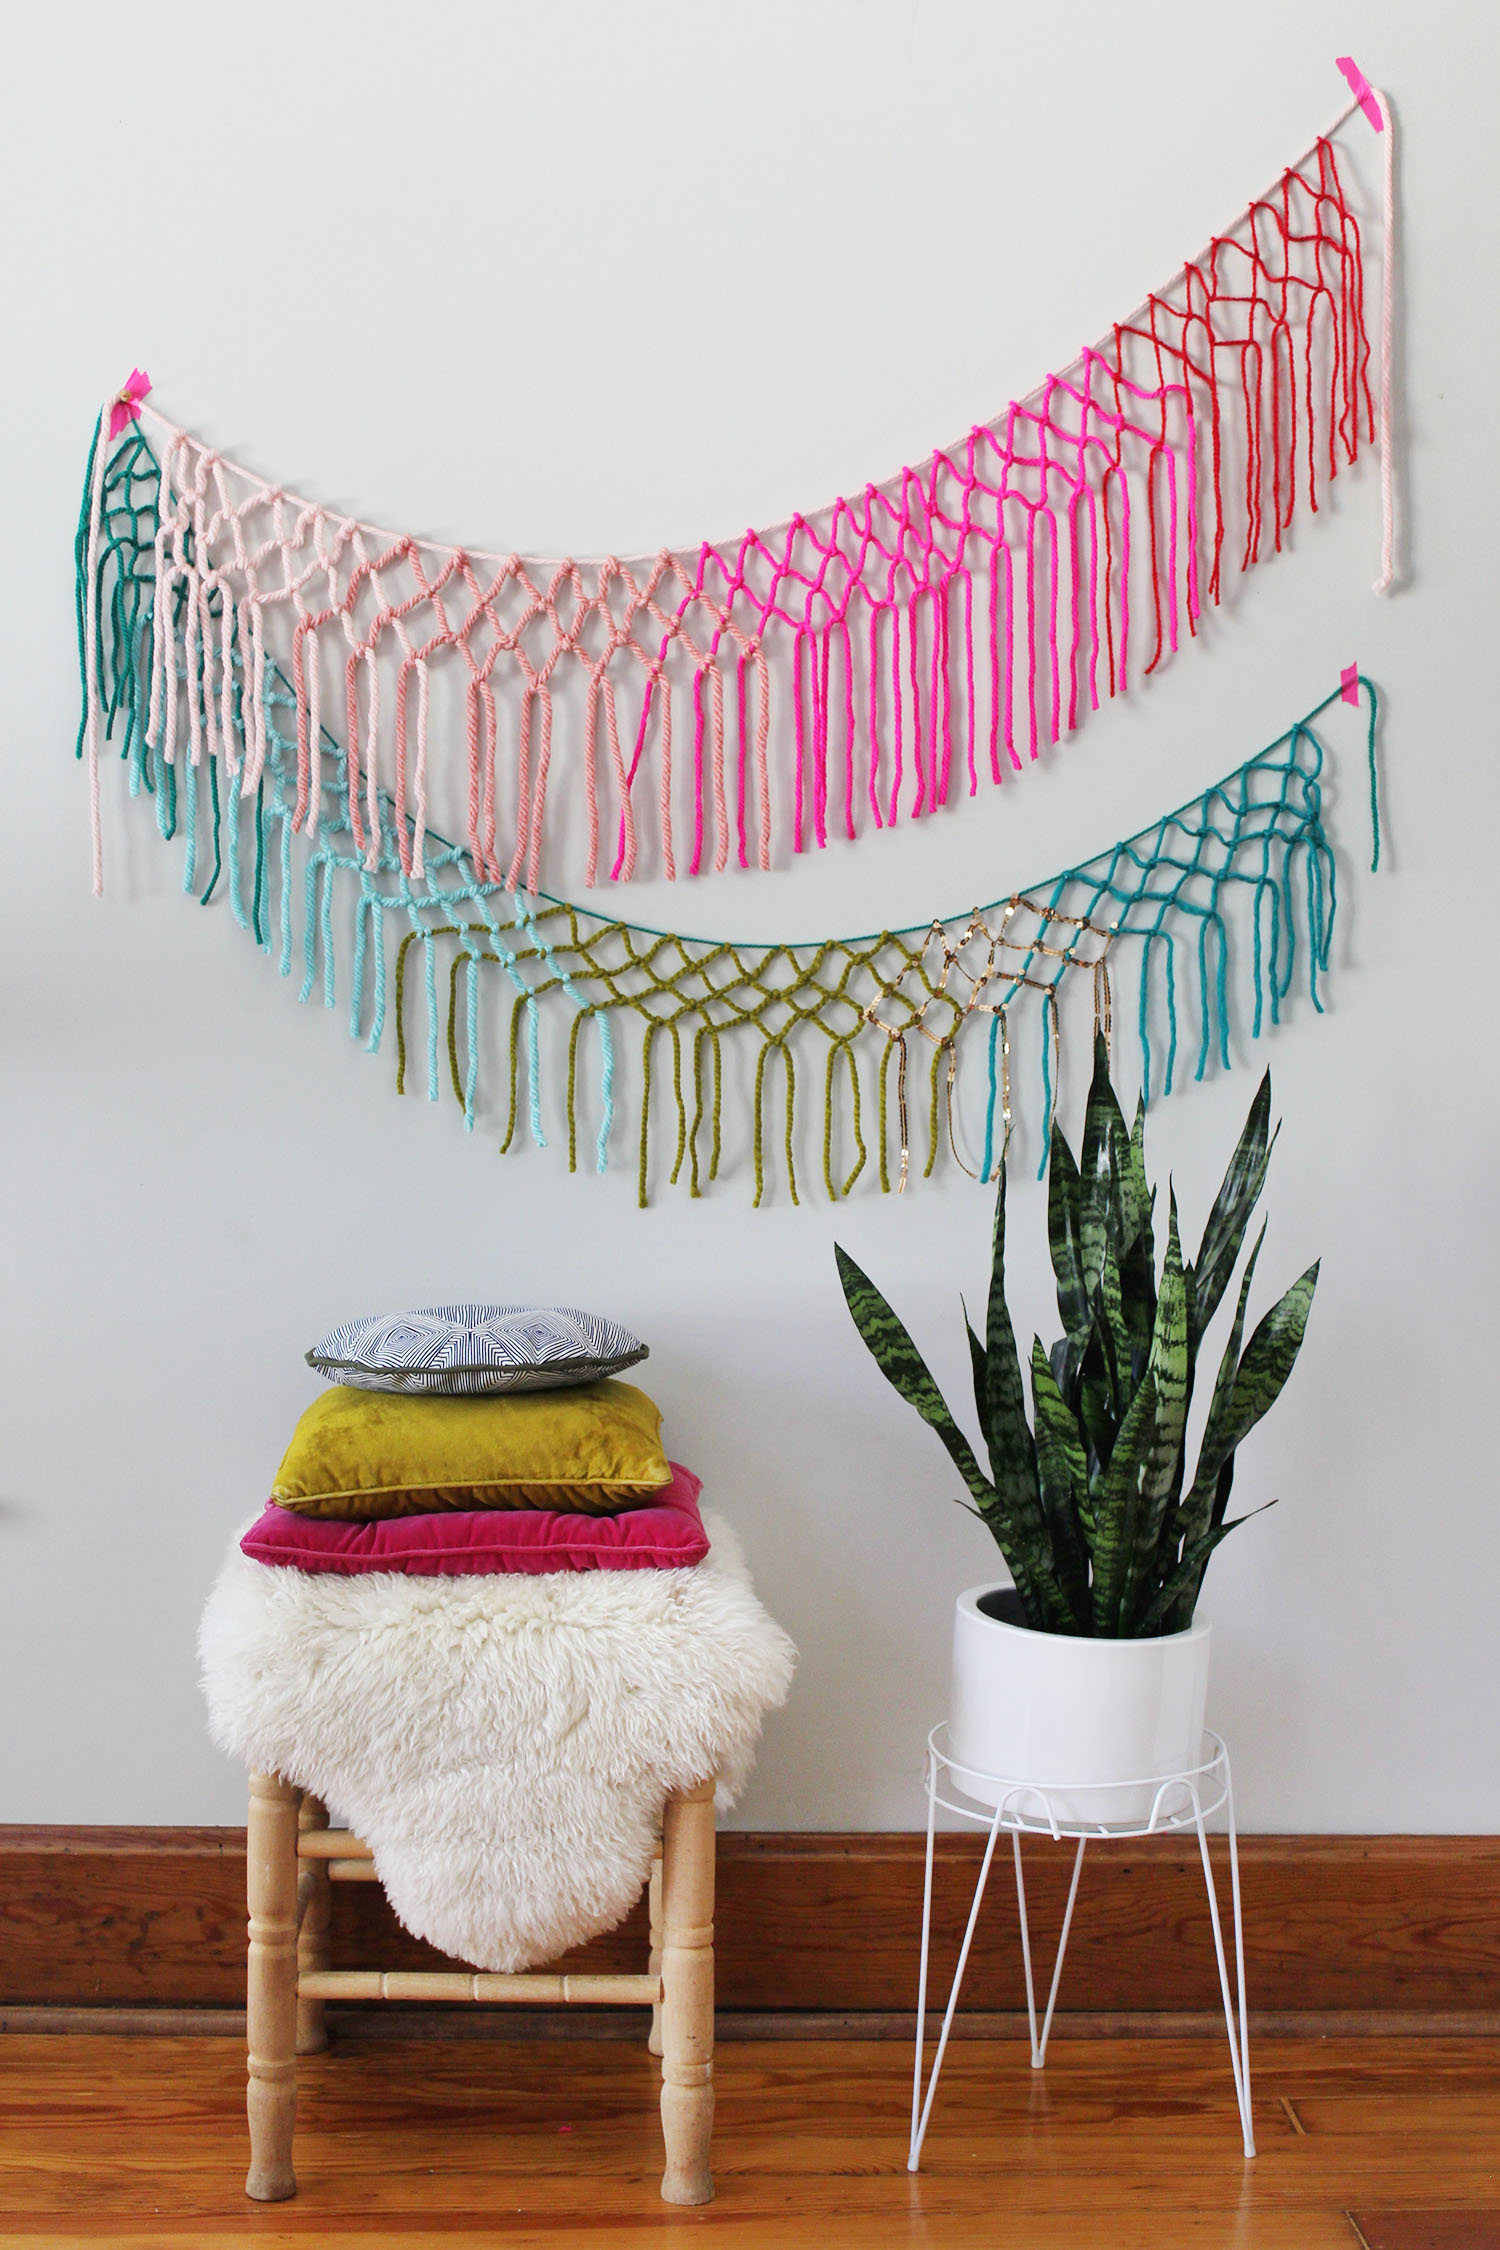 Simple Diy Macrame Necklace: Macrame Yarn Garland DIY